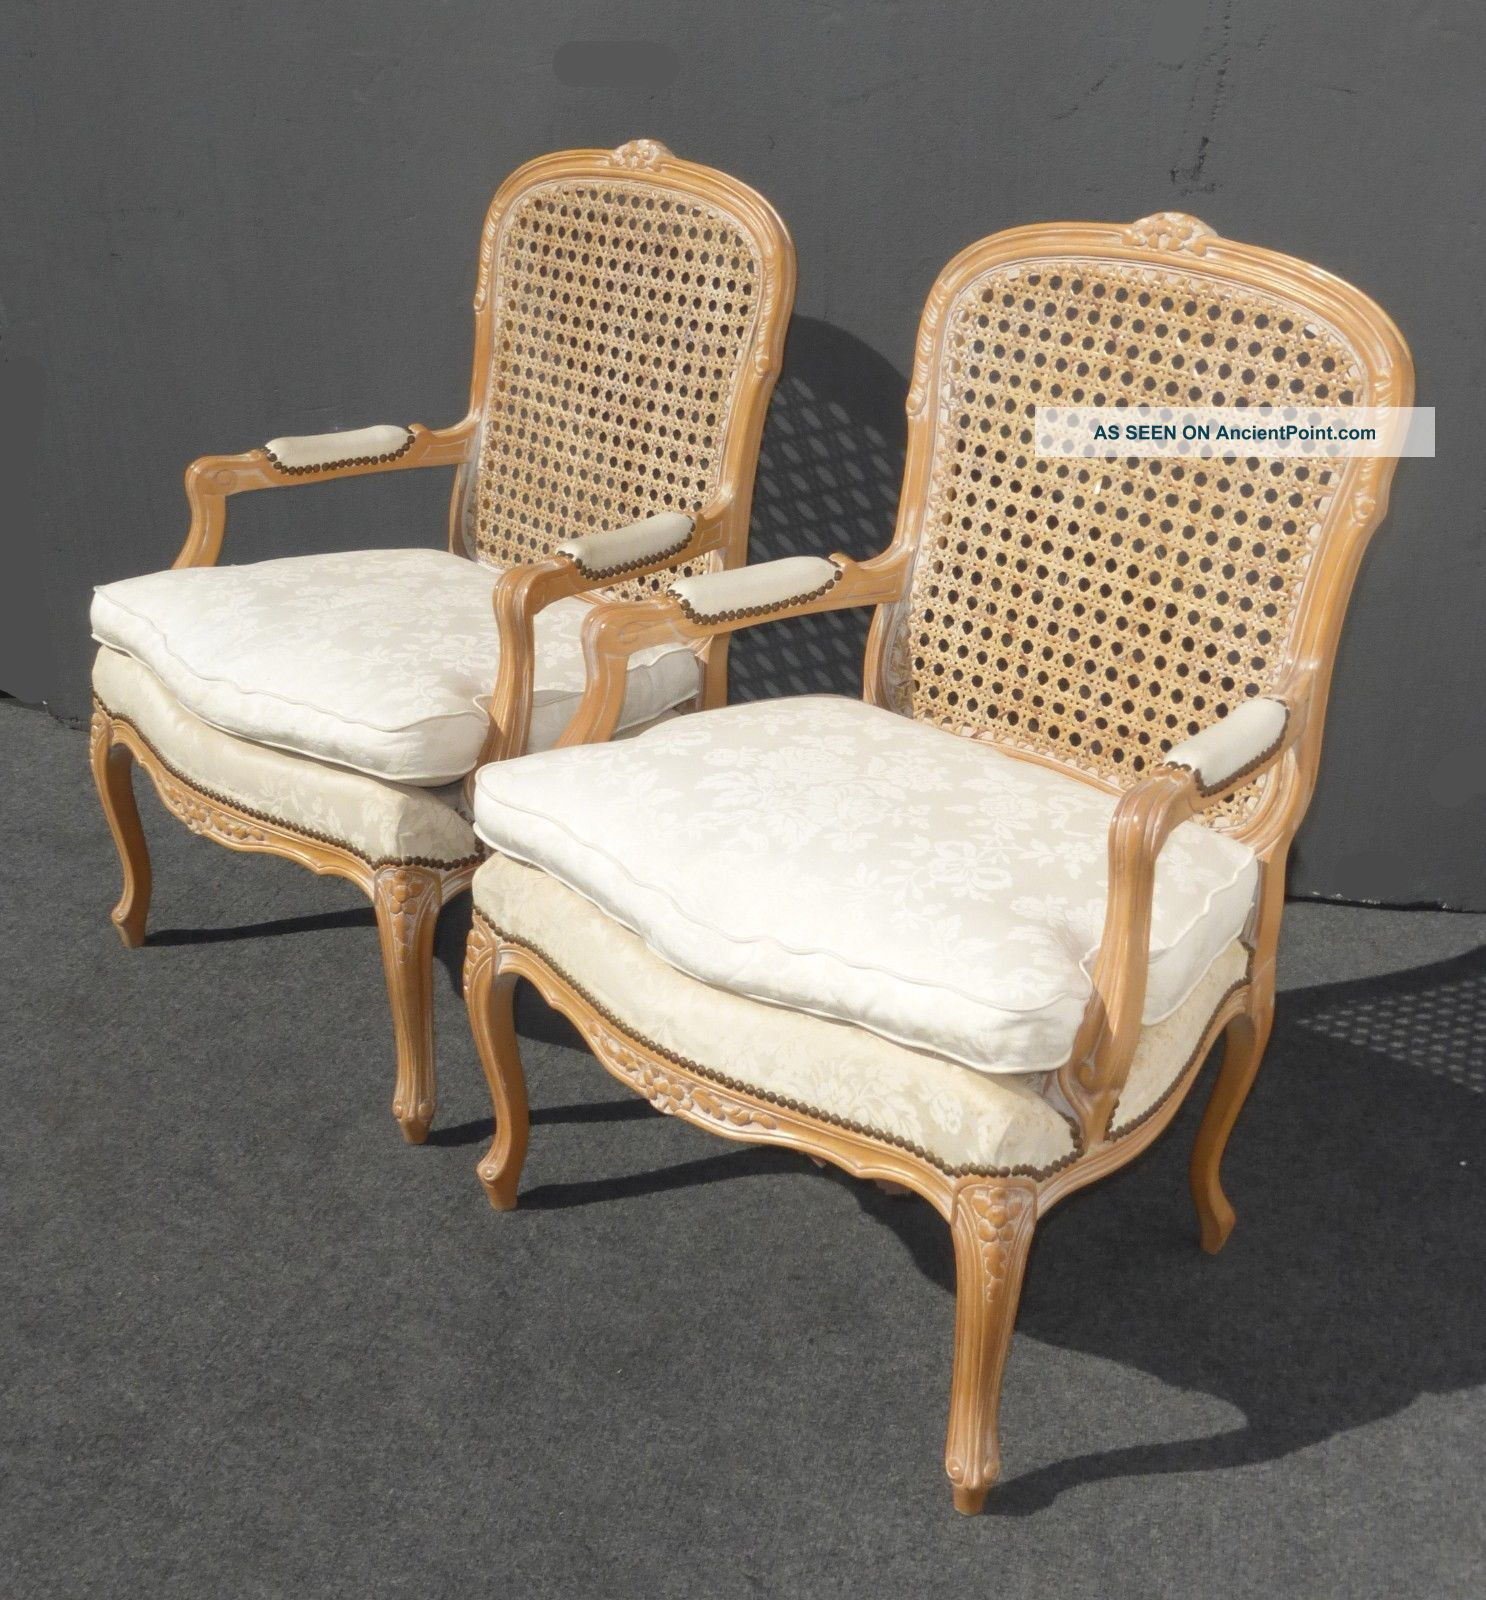 Superb img of chairs click photo to enlarge category furniture chairs post 1950 with #936C38 color and 1486x1600 pixels